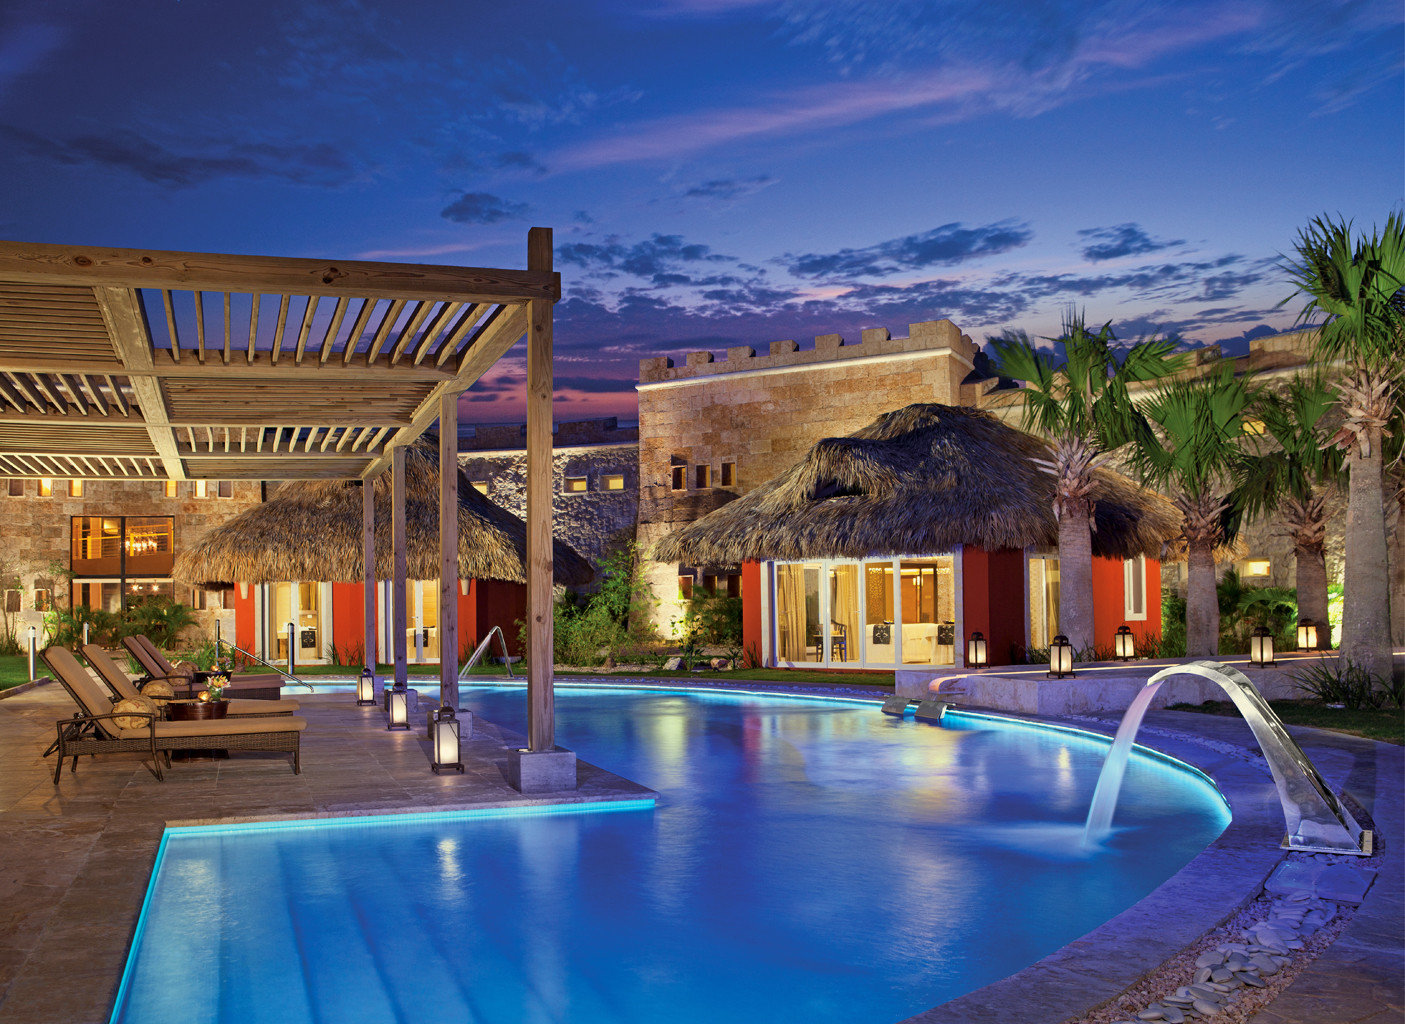 All-inclusive All-Inclusive Resorts caribbean Lounge Luxury Modern Pool building outdoor swimming pool property leisure Resort estate vacation house Villa home mansion real estate hacienda blue swimming